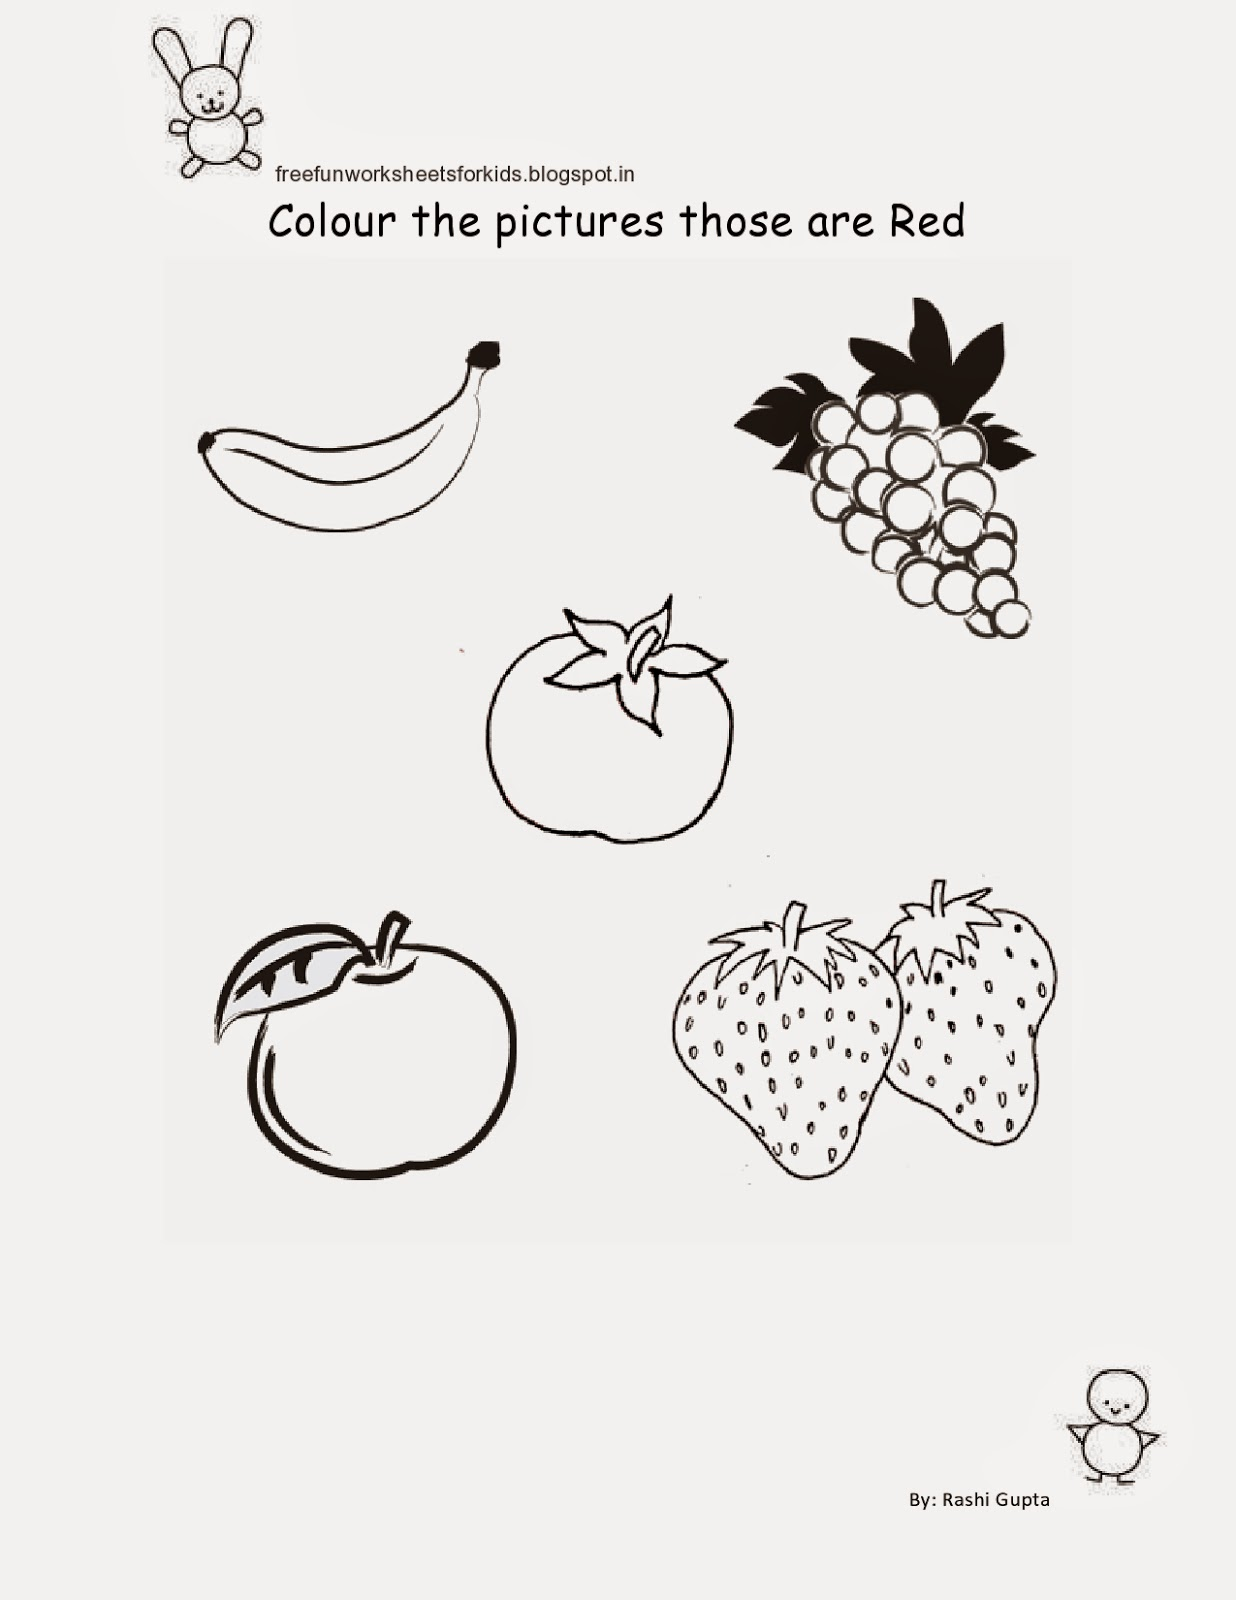 Worksheets Worksheets For Nursery free fun worksheets for kids printable class nursery colour the pictures according to colour